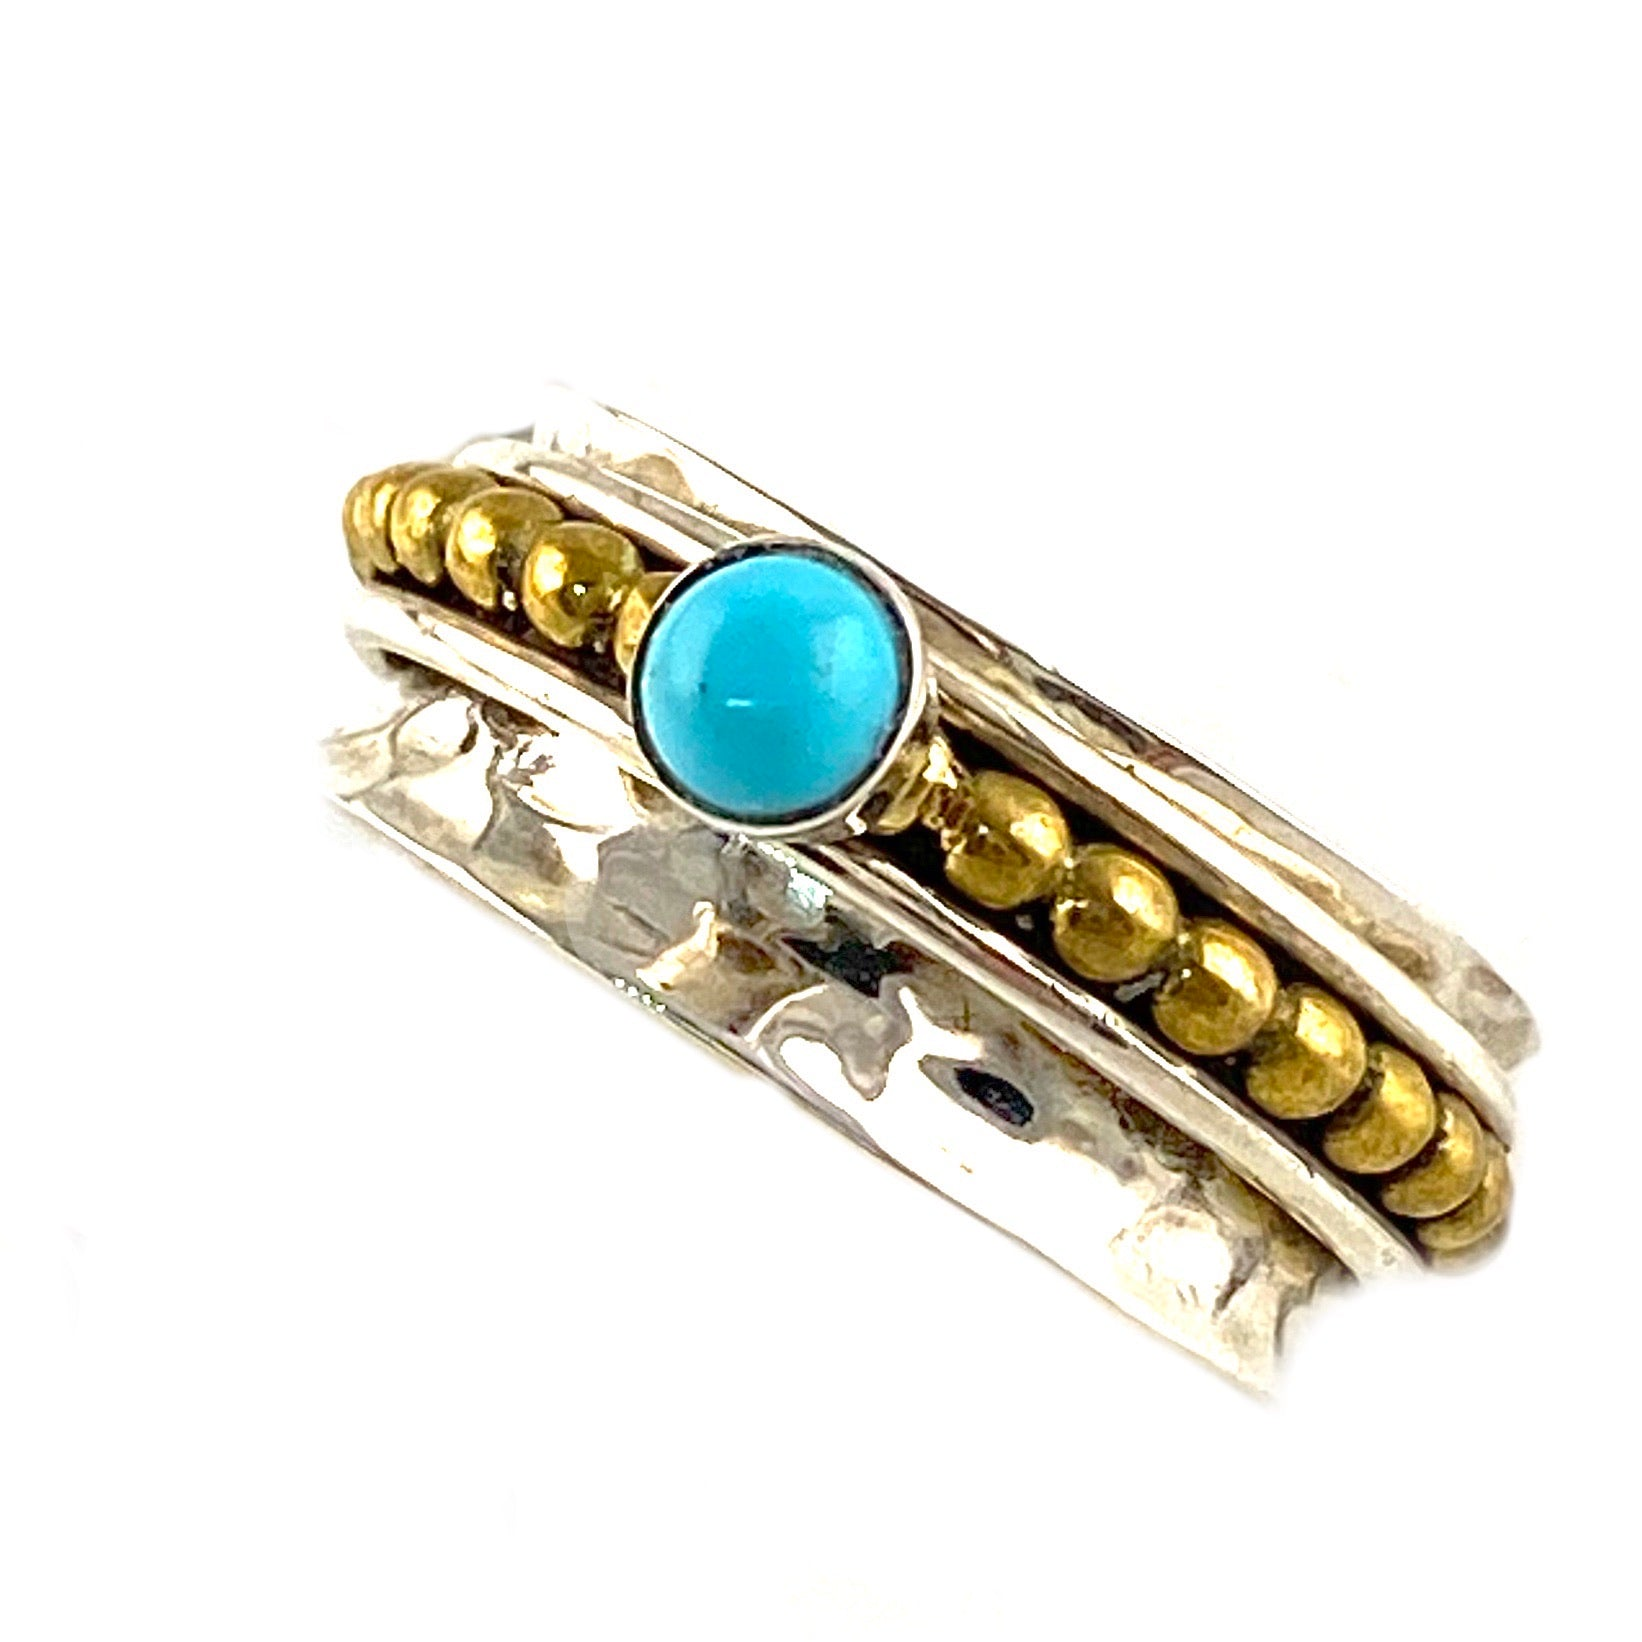 Spinner Ring - Two Tone Turquoise Ring